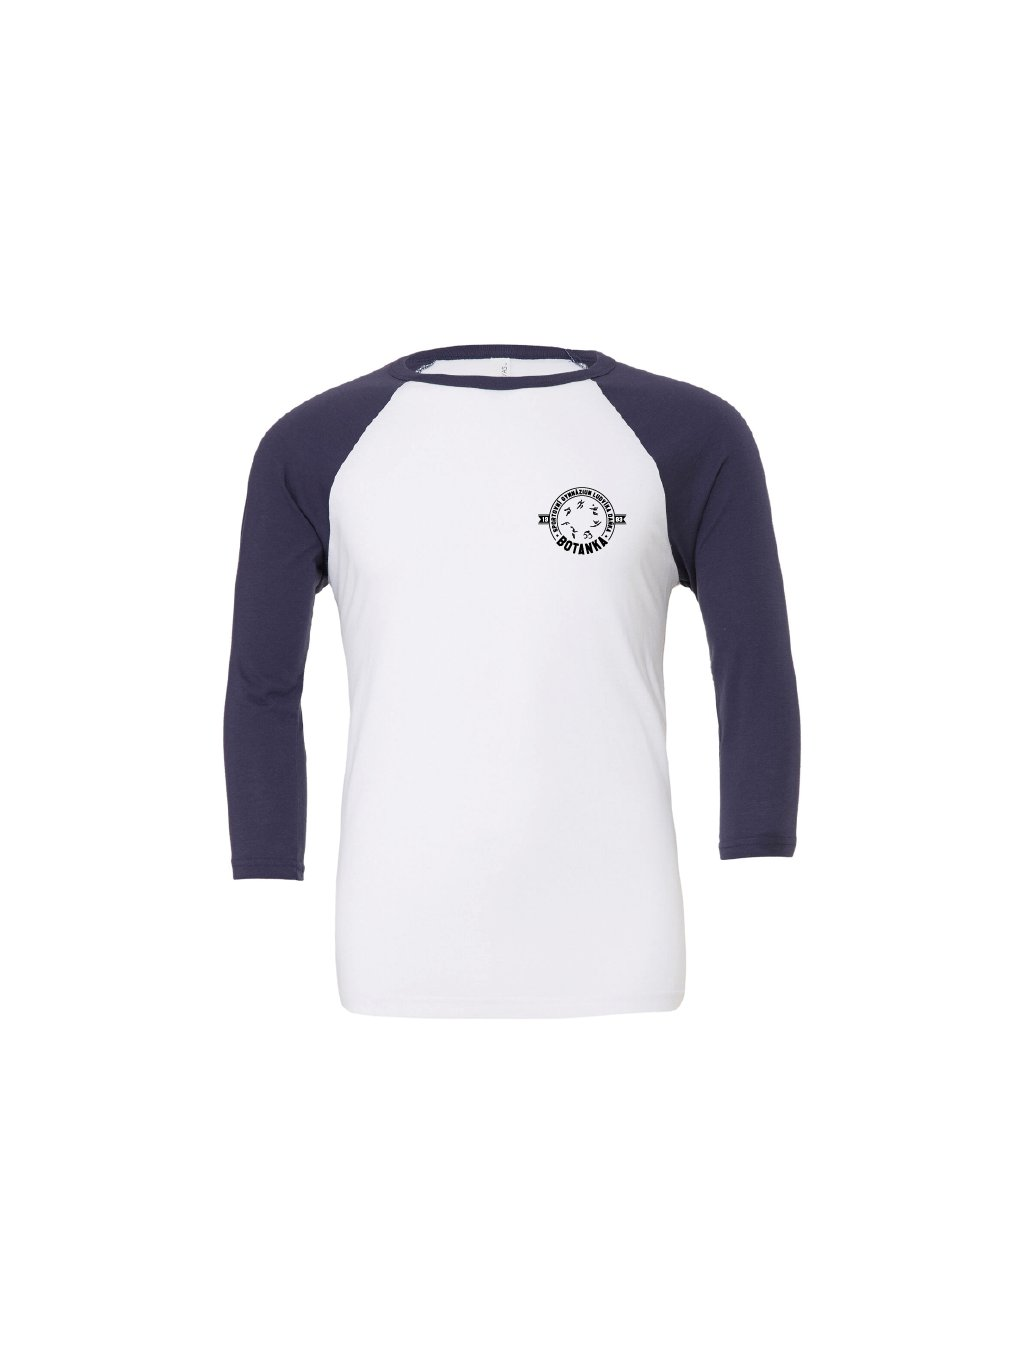 Baseball tee white navy